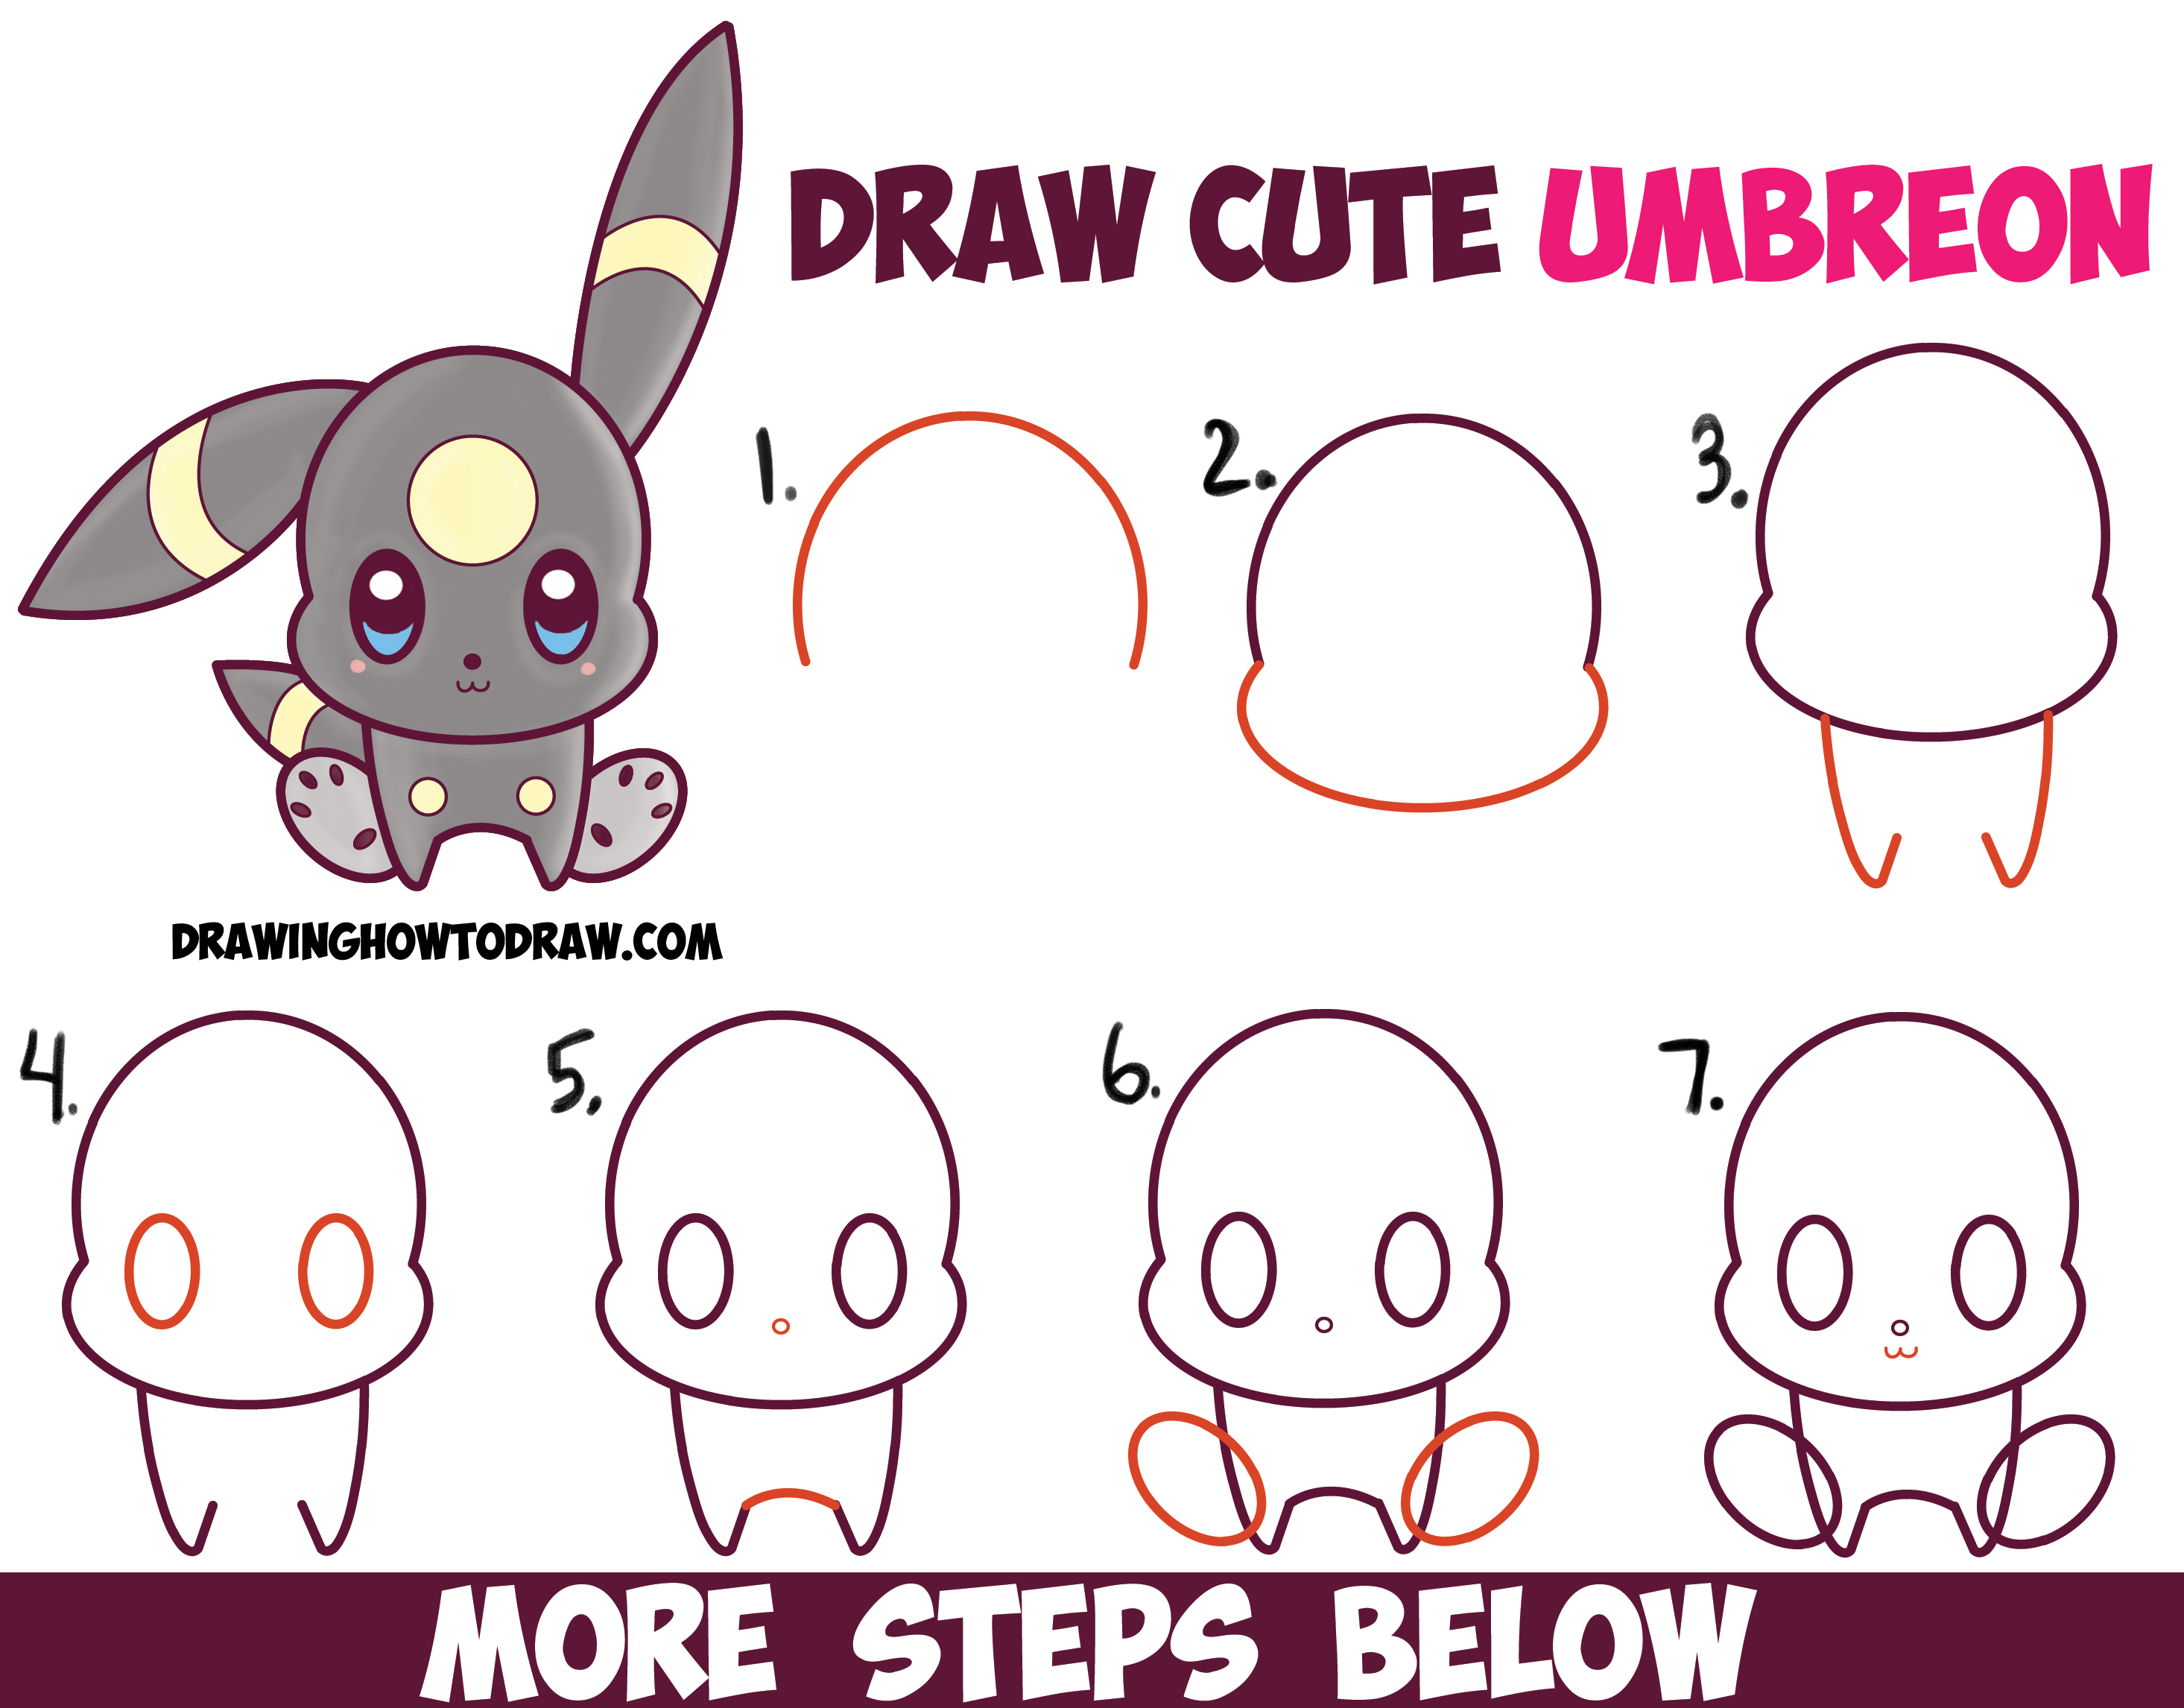 How to draw cute kawaii chibi umbreon from pokemon easy for Good drawing tutorials for beginners